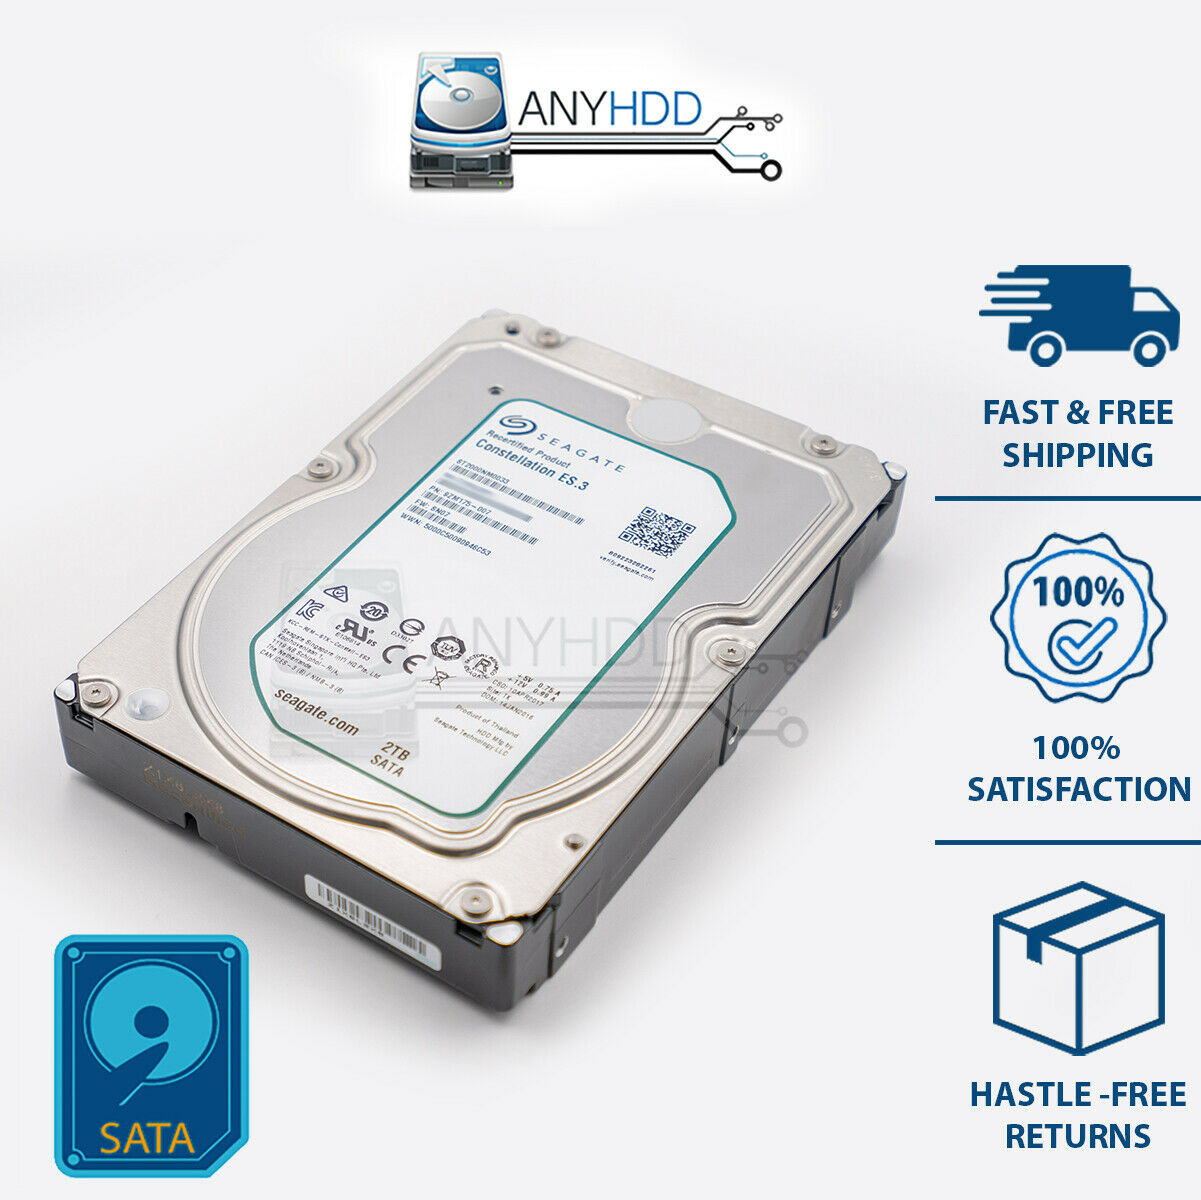 Renewed 2TB Constellation.ES SATA